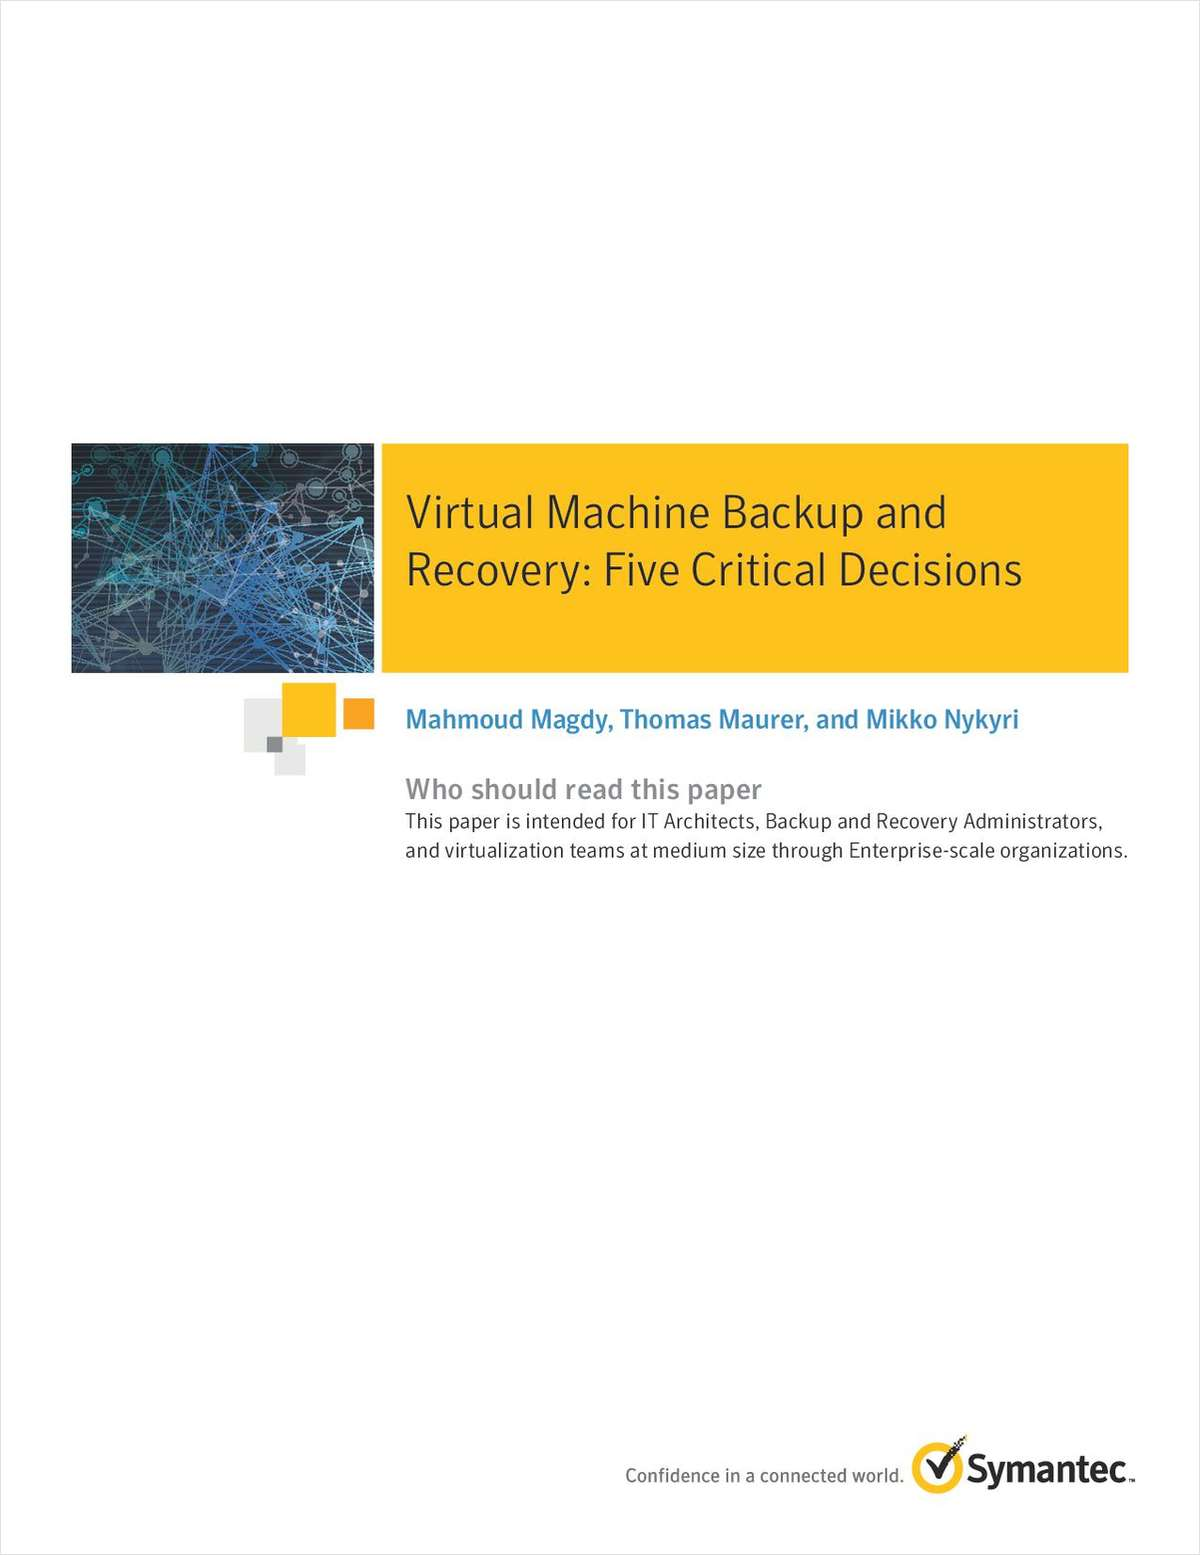 Virtual Machine Backup and Recovery: Five Critical Decisions